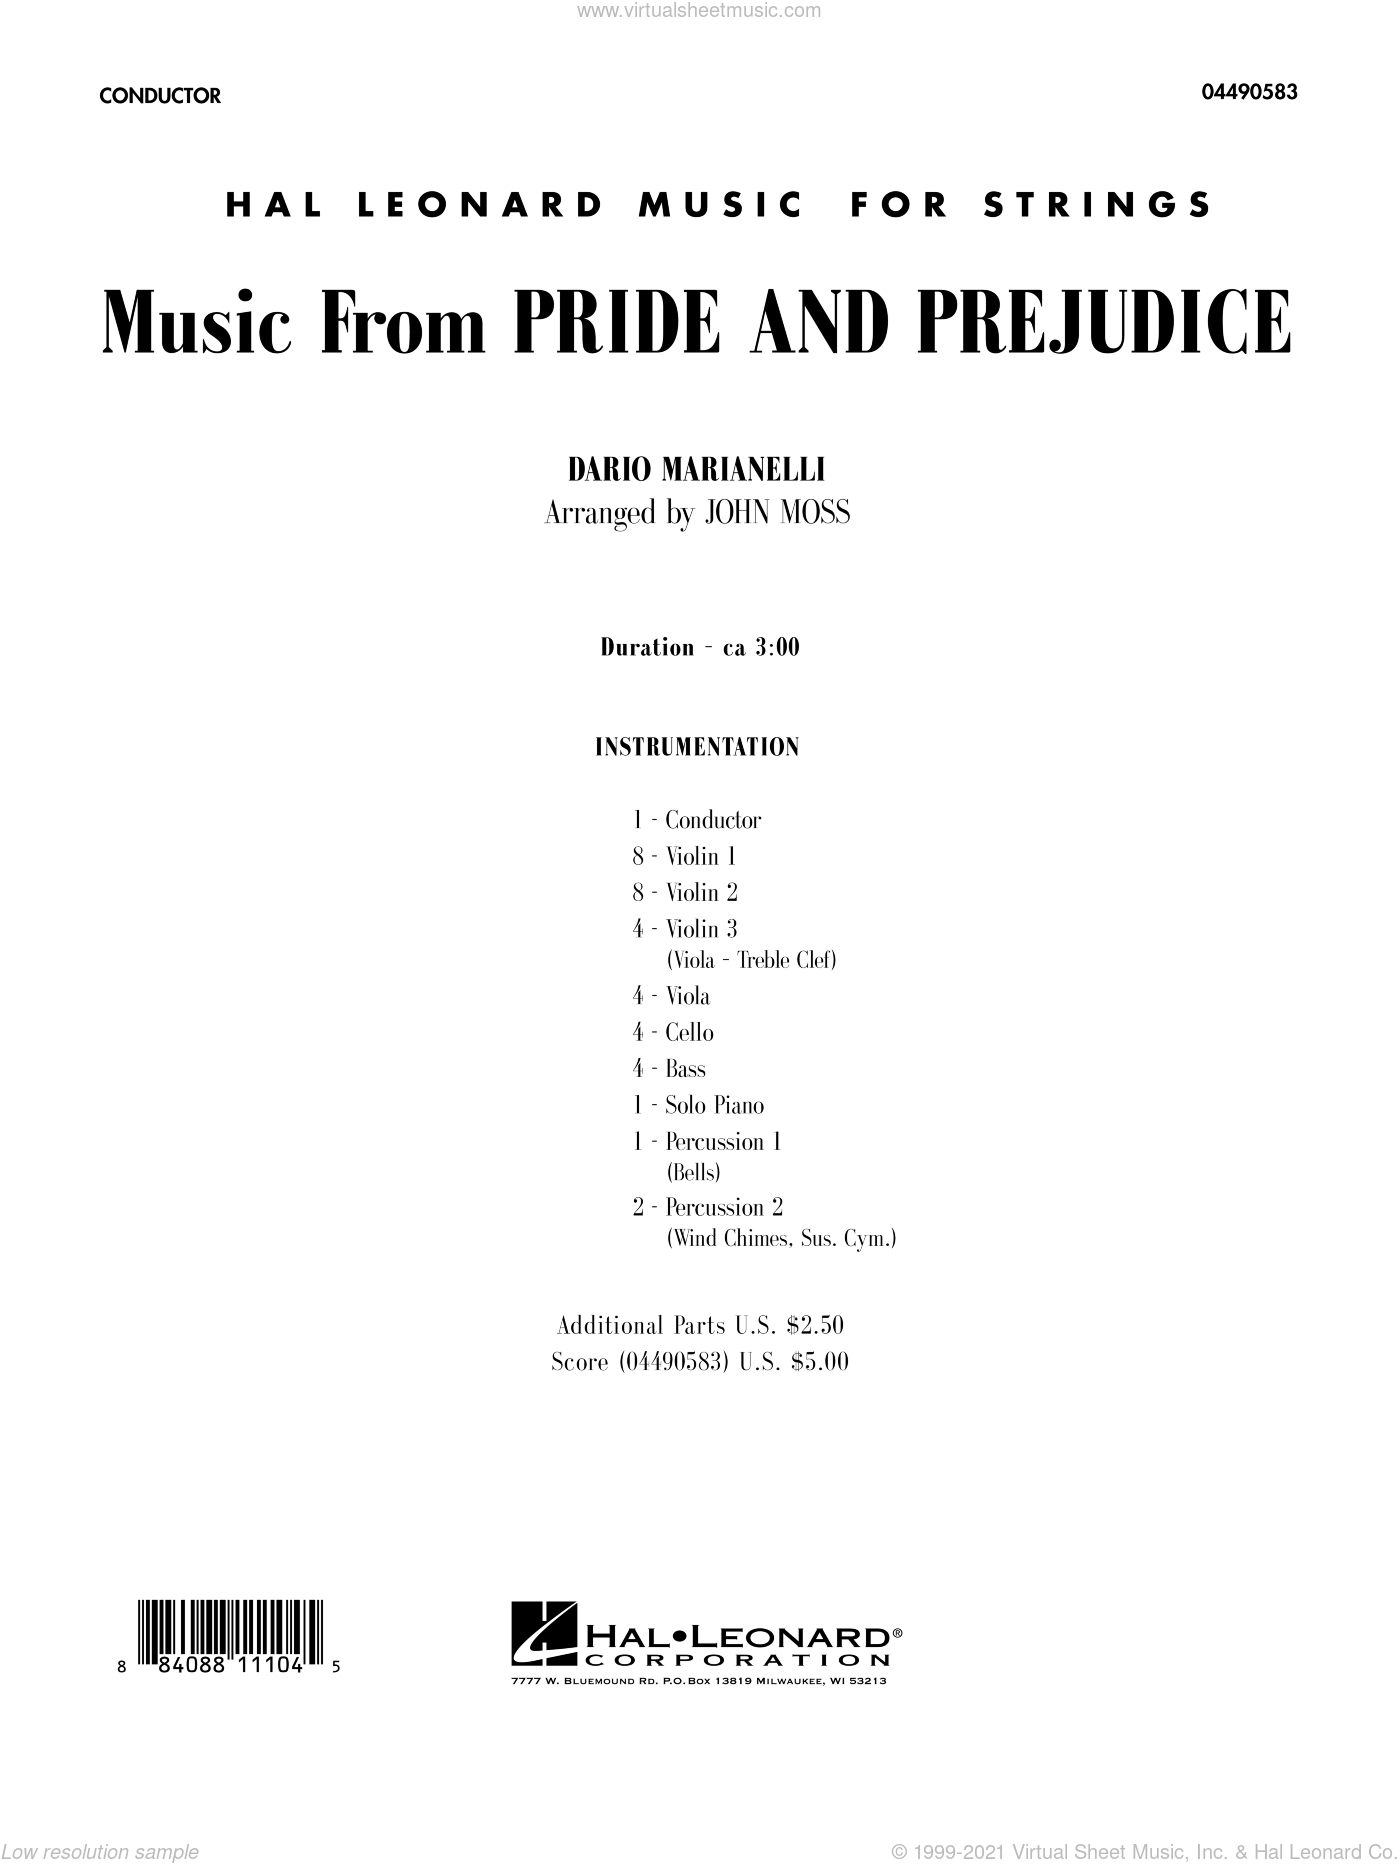 Music from Pride and Prejudice sheet music for orchestra (full score) by Dario Marianelli